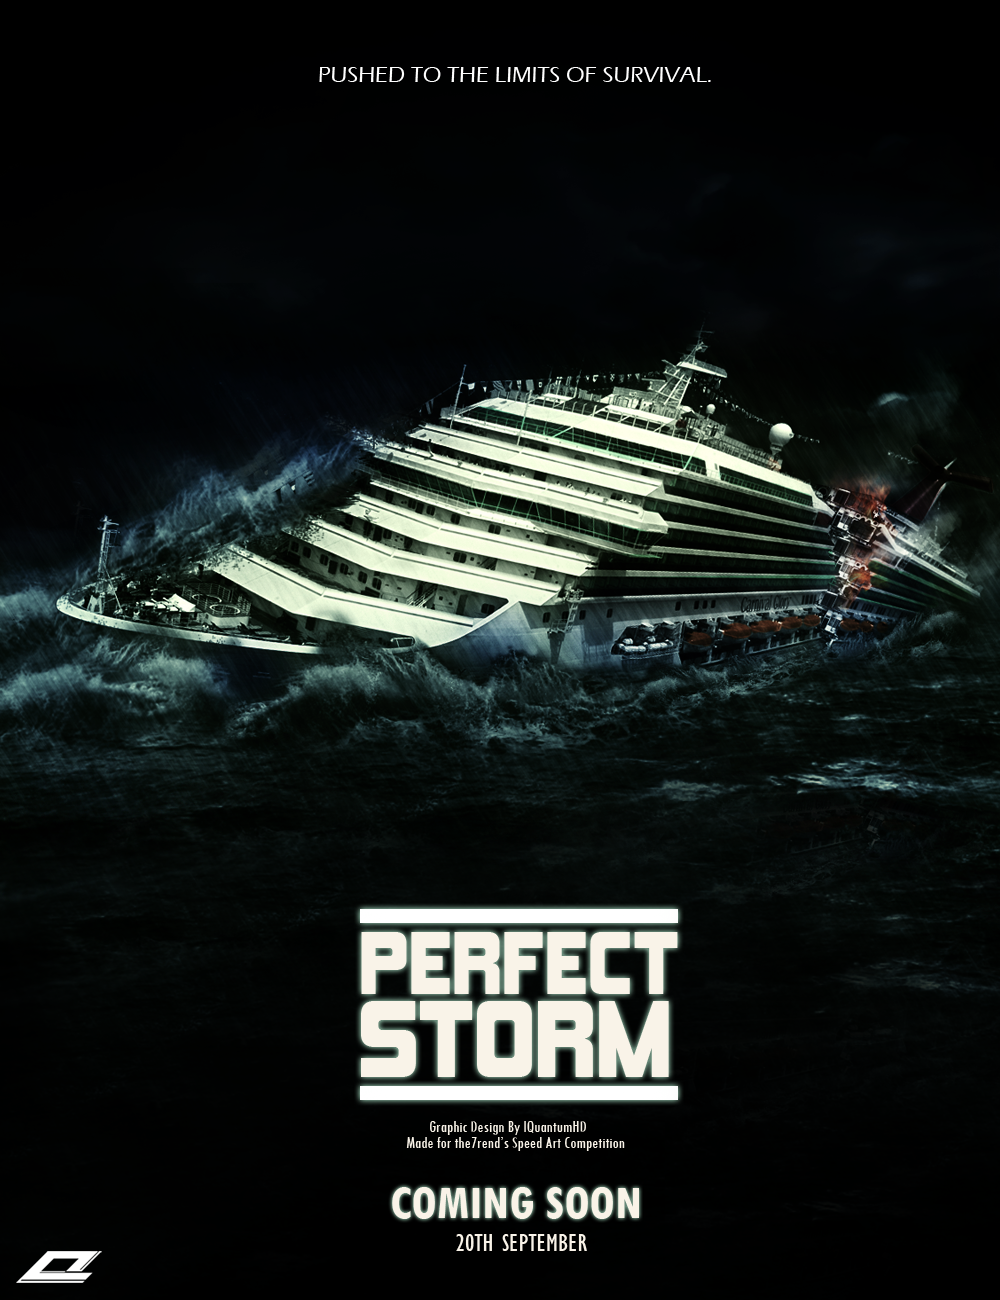 a review of the movie the perfect storm Includes reviews, audio clips, track listings, pictures, and other notes about the perfect storm soundtrack by james horner.